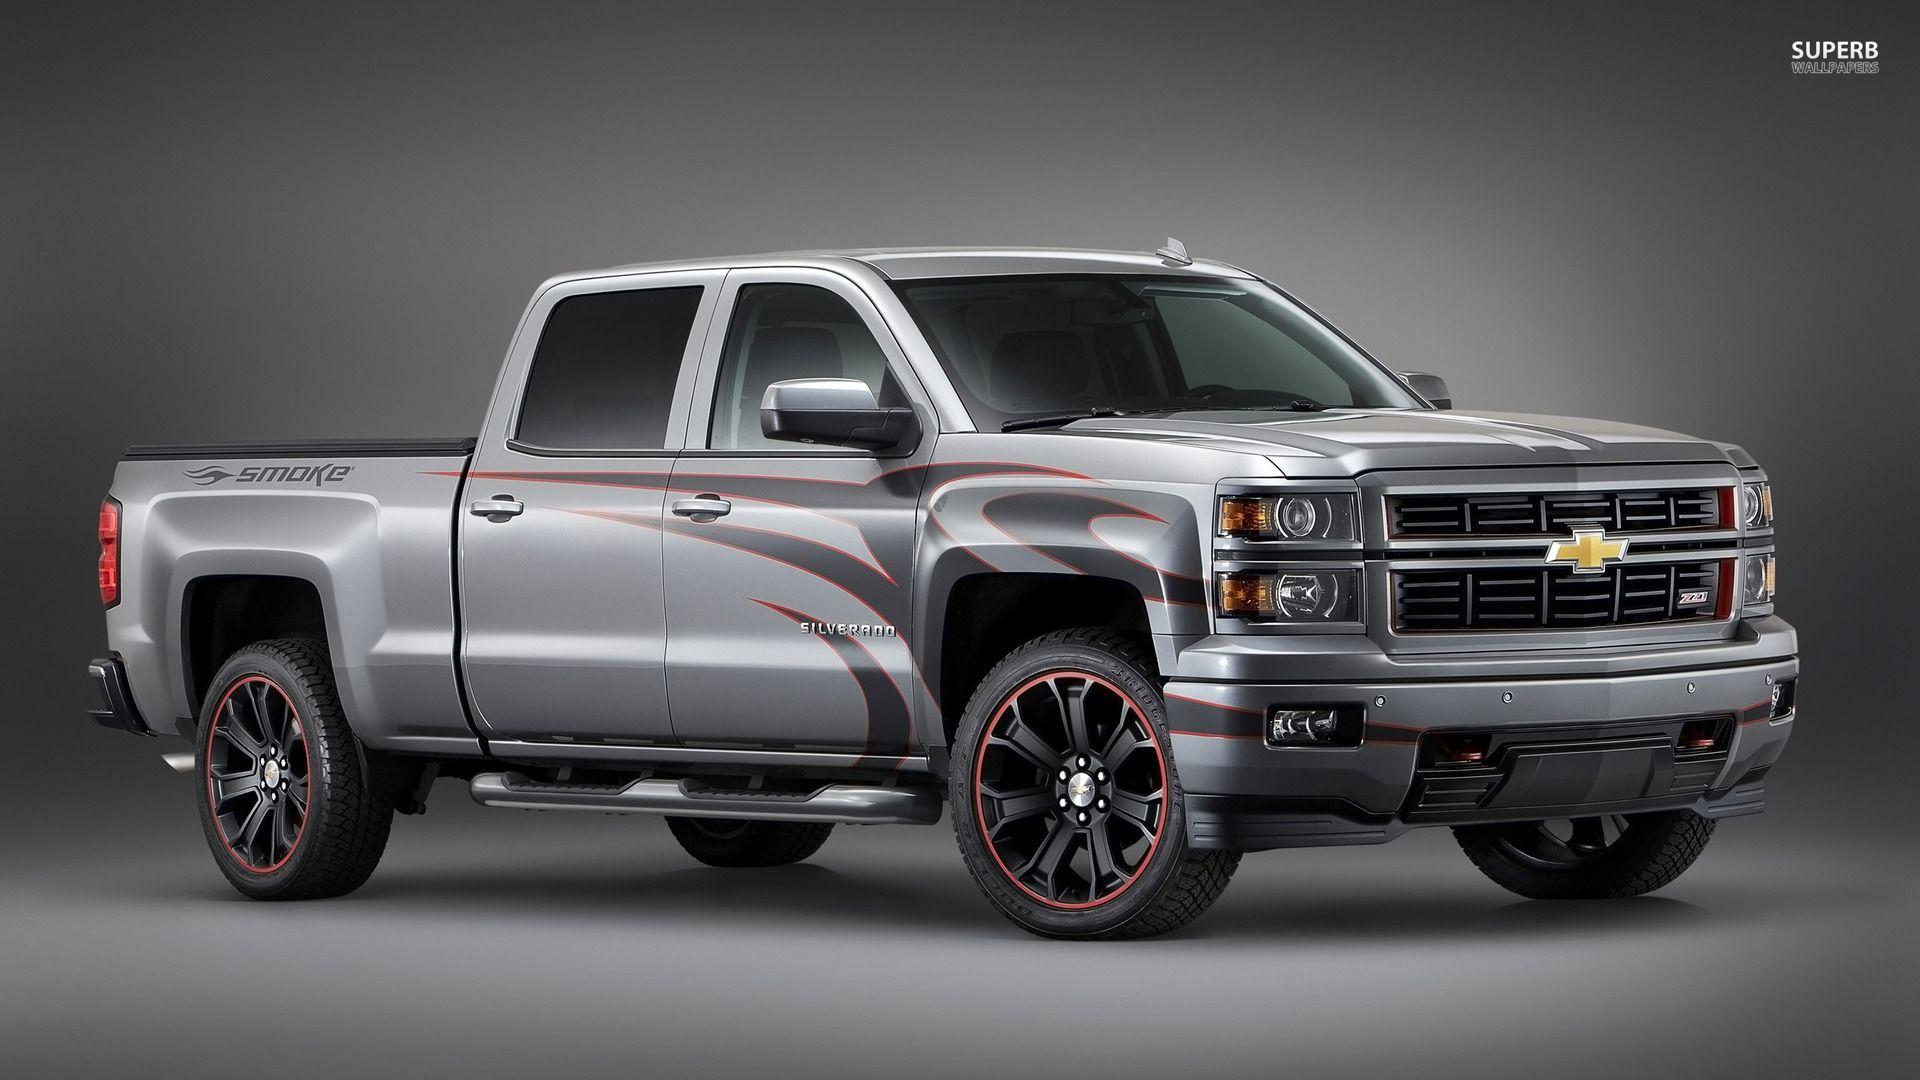 Lifted Gmc Trucks Wallpapers Wallpaper Cave